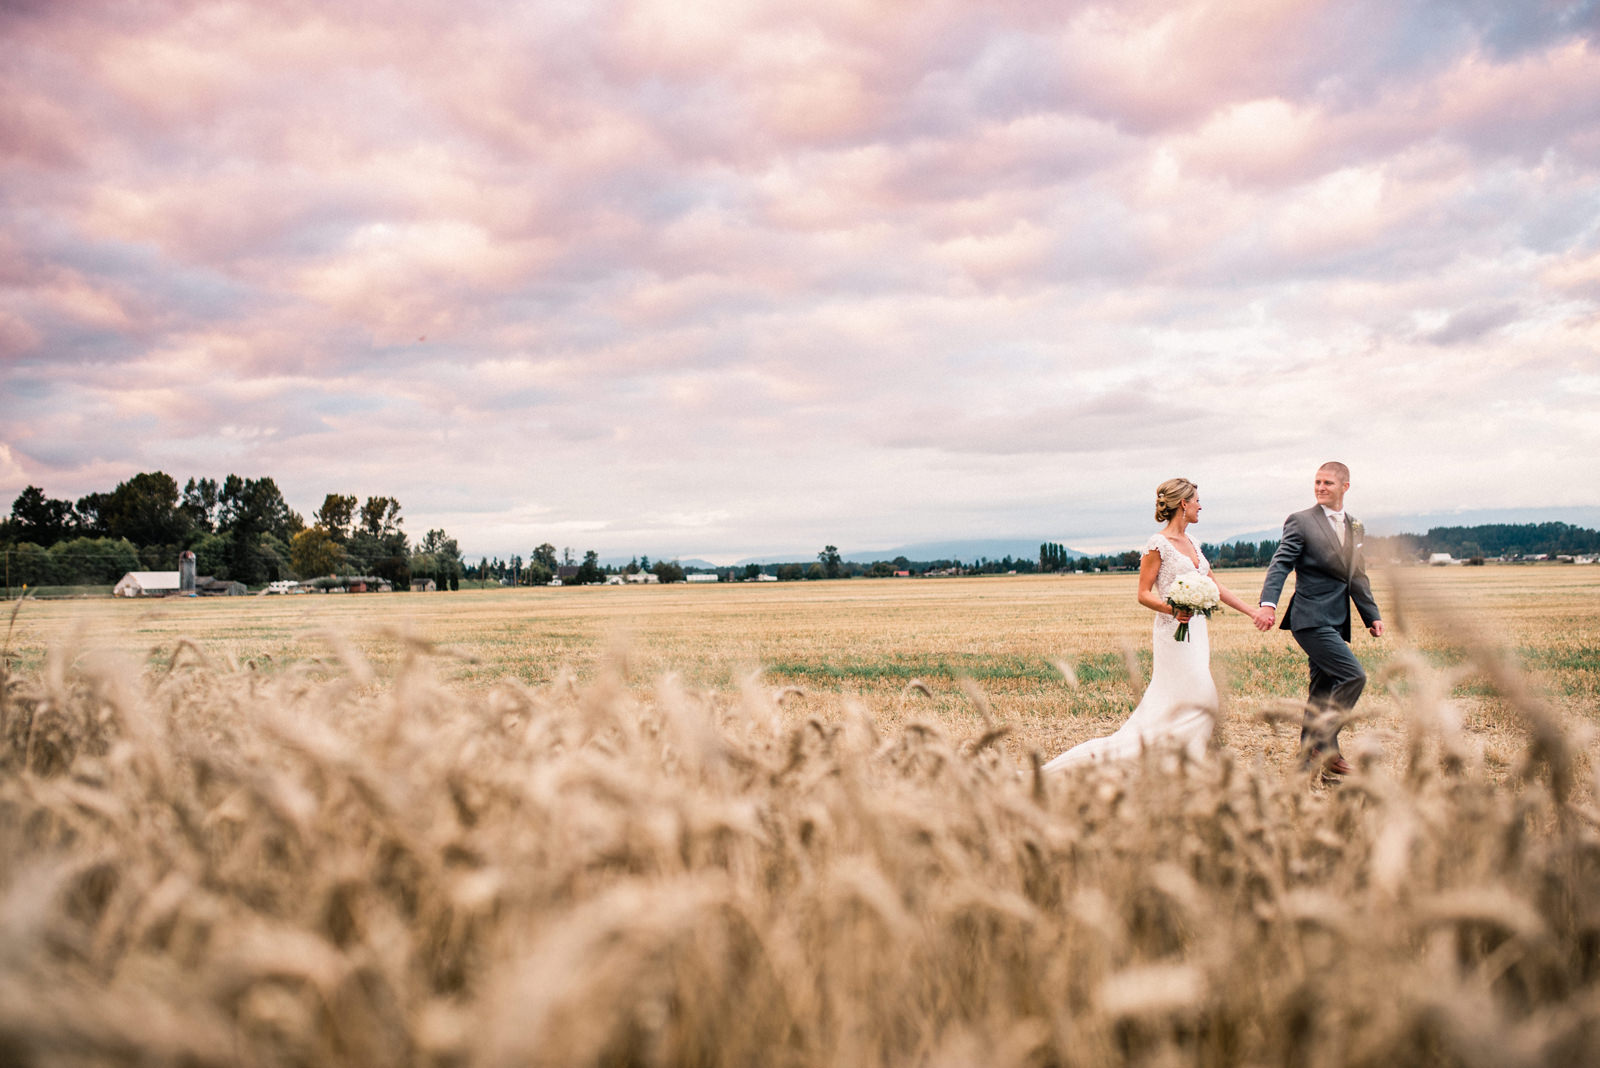 160-maplehurst-farm-wedding-by-washington-film-photographer-ryan-flynn.jpg